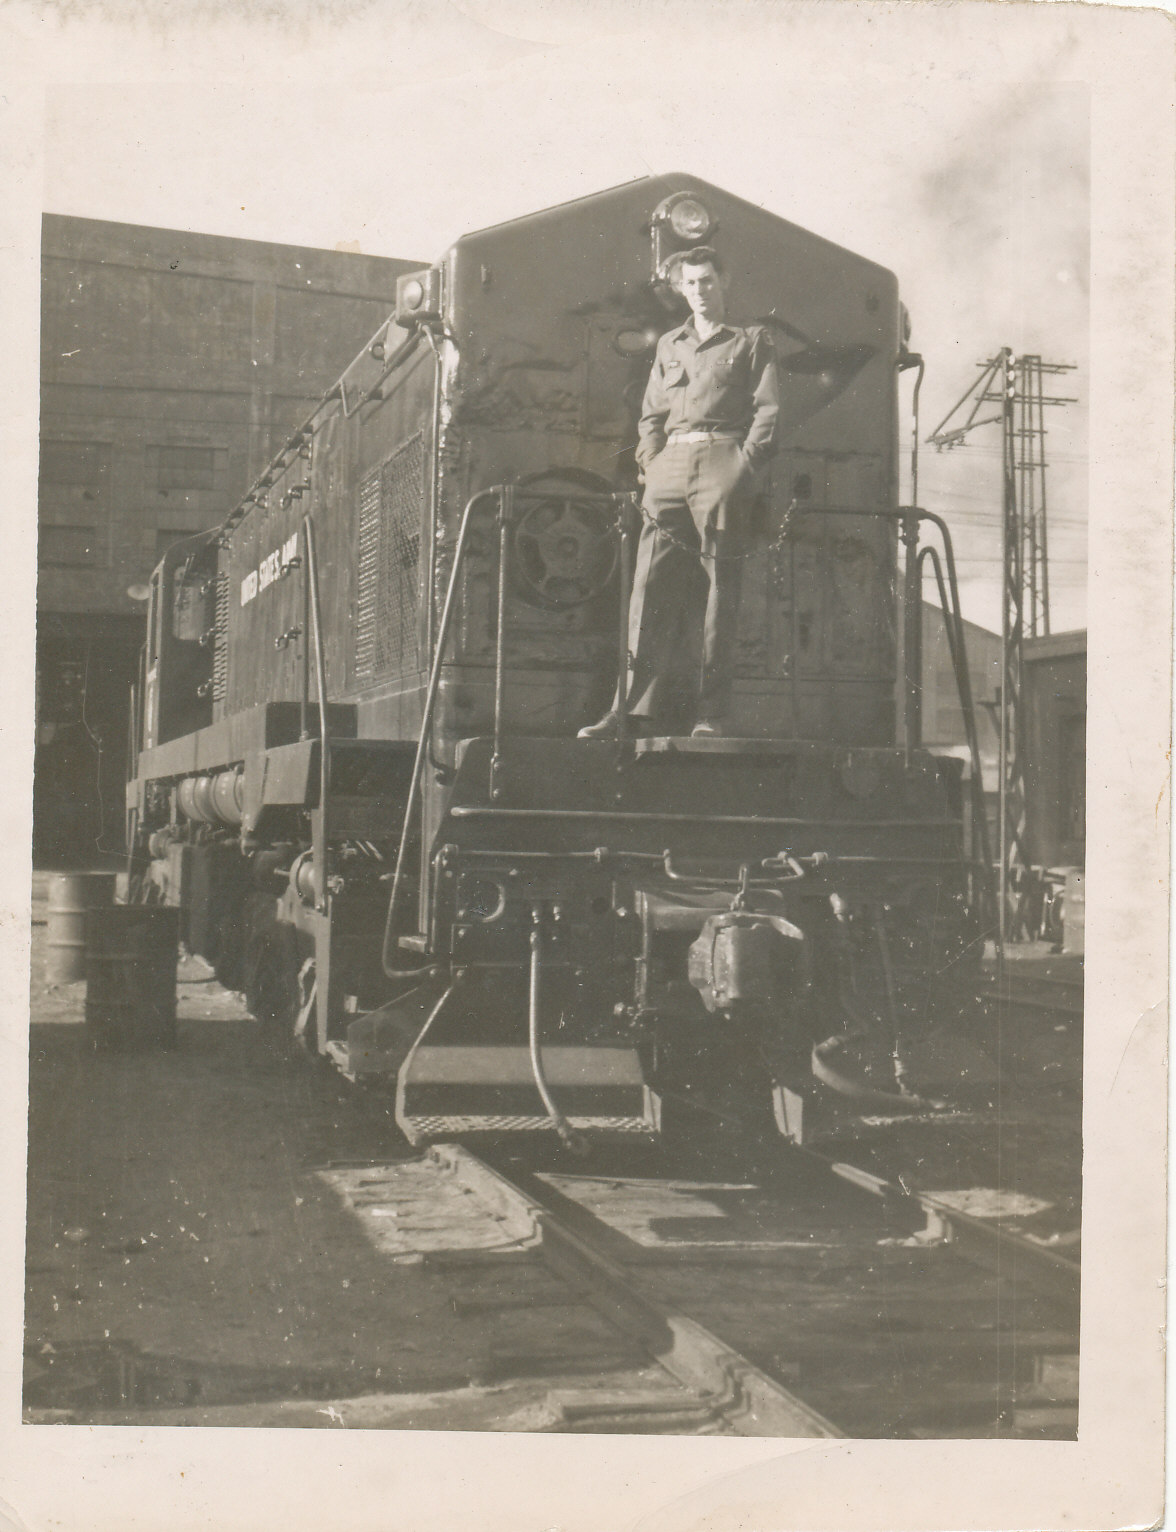 Black and white photo of man standing on railroad car